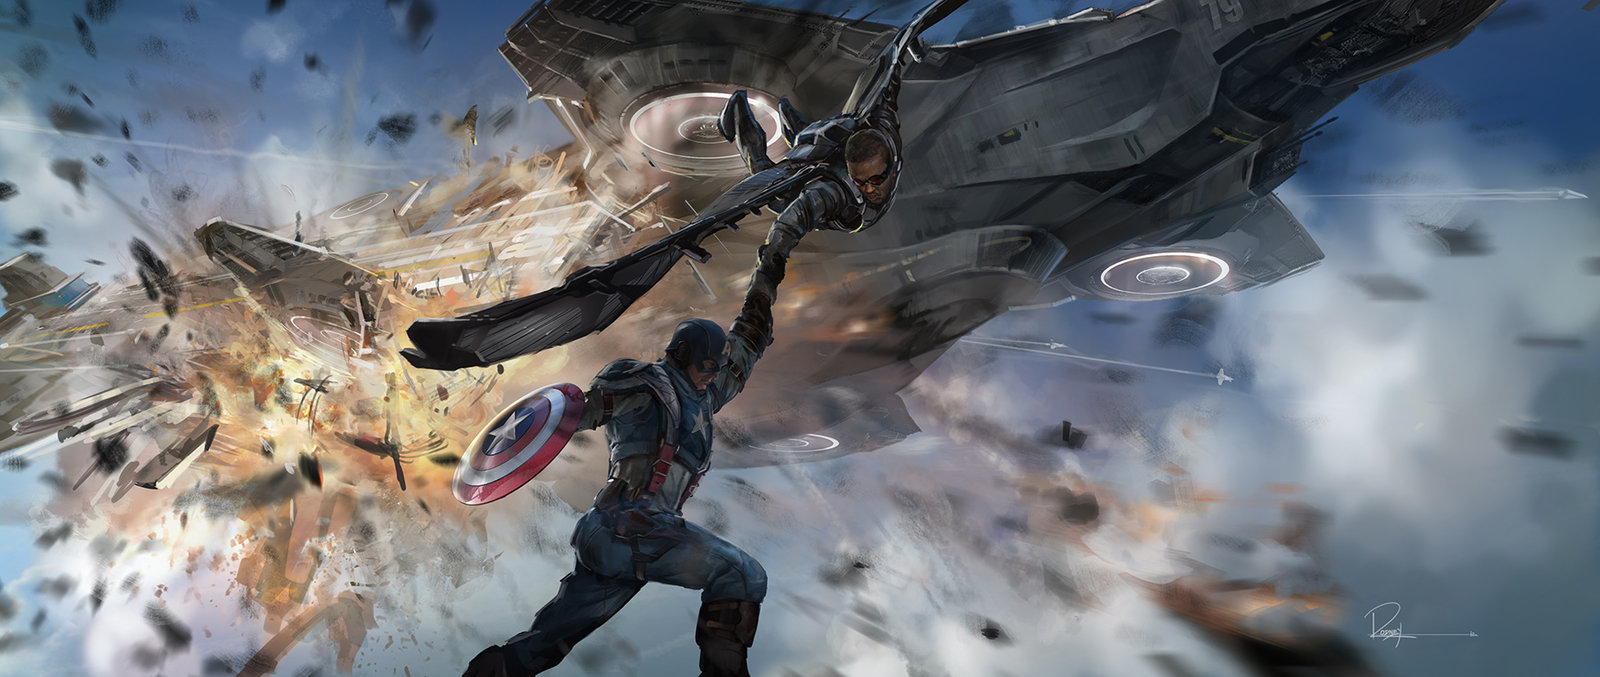 Key Frame Illustration - Marvel's Captain America The Winter Soldier 2